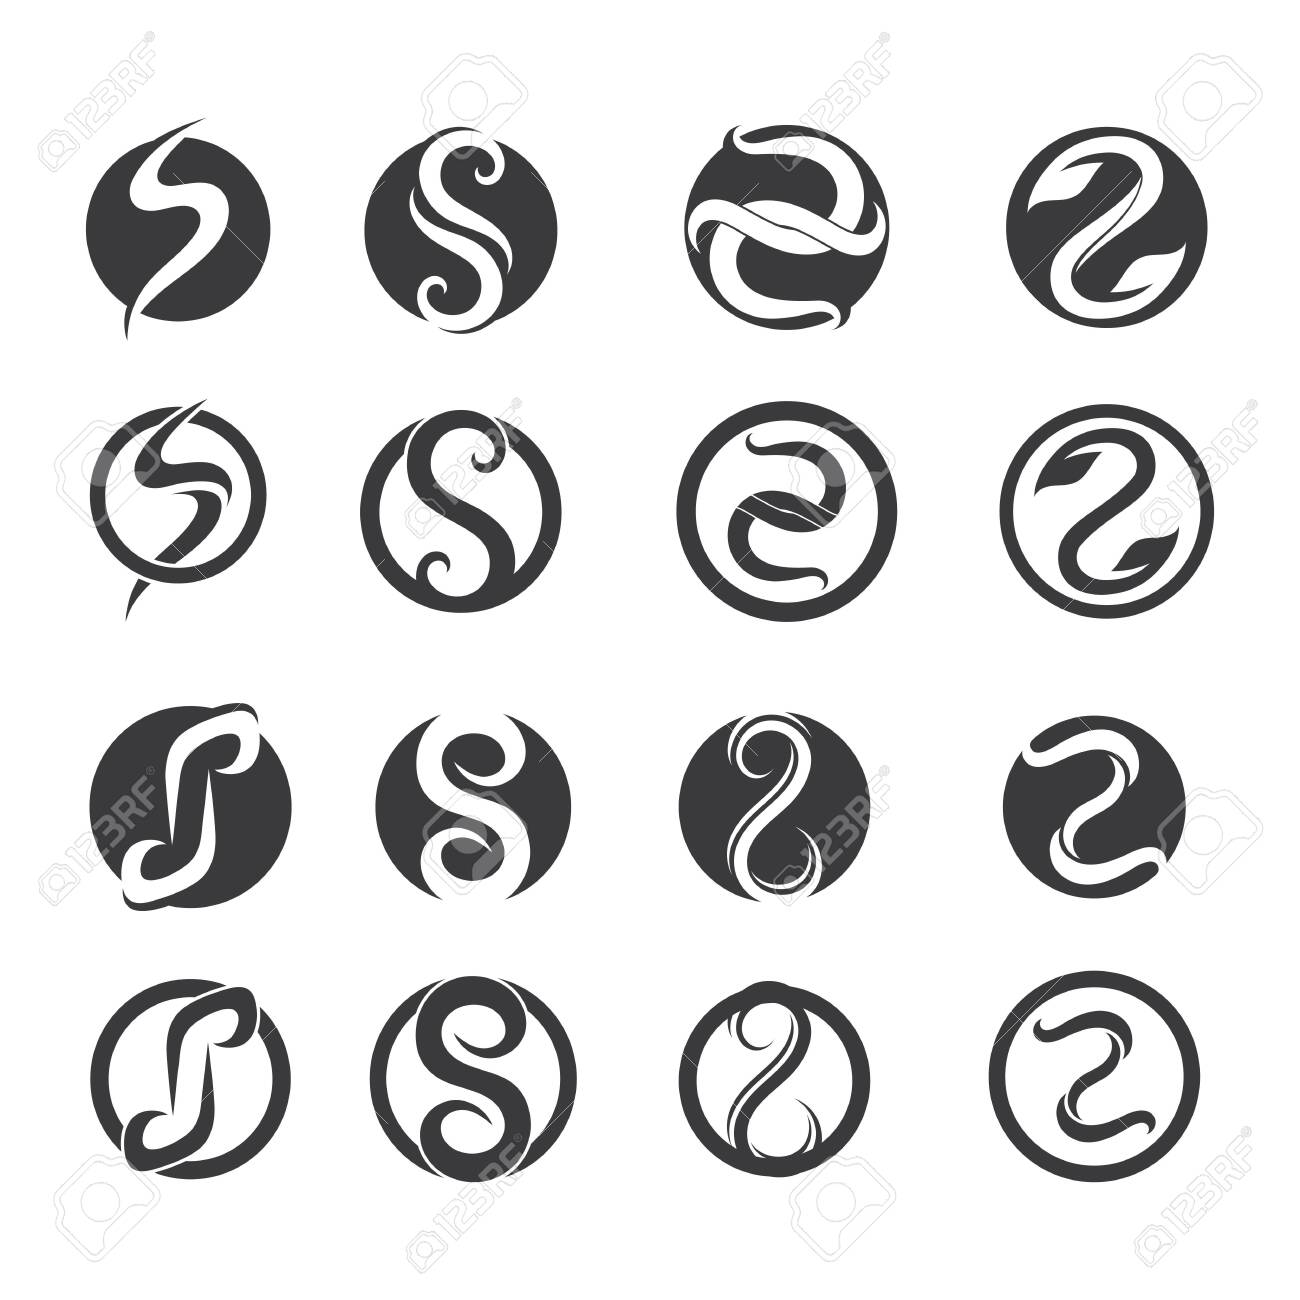 S logo and symbols template vector icons - 129465420